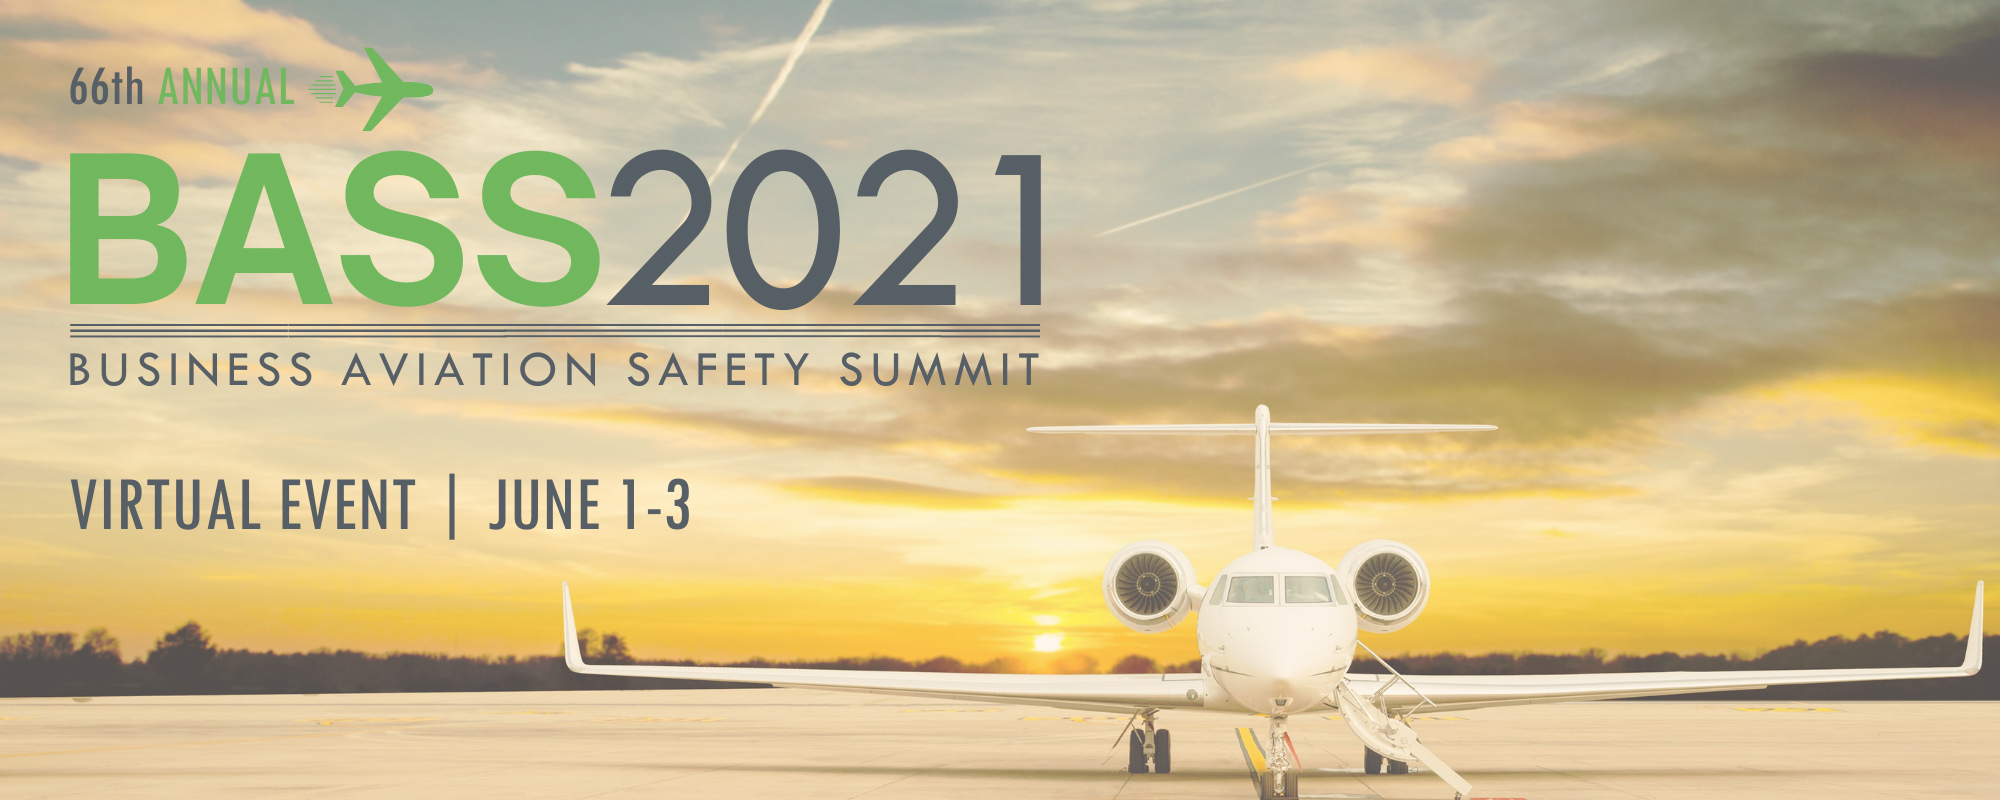 Business Aviation Safety Summit 2021